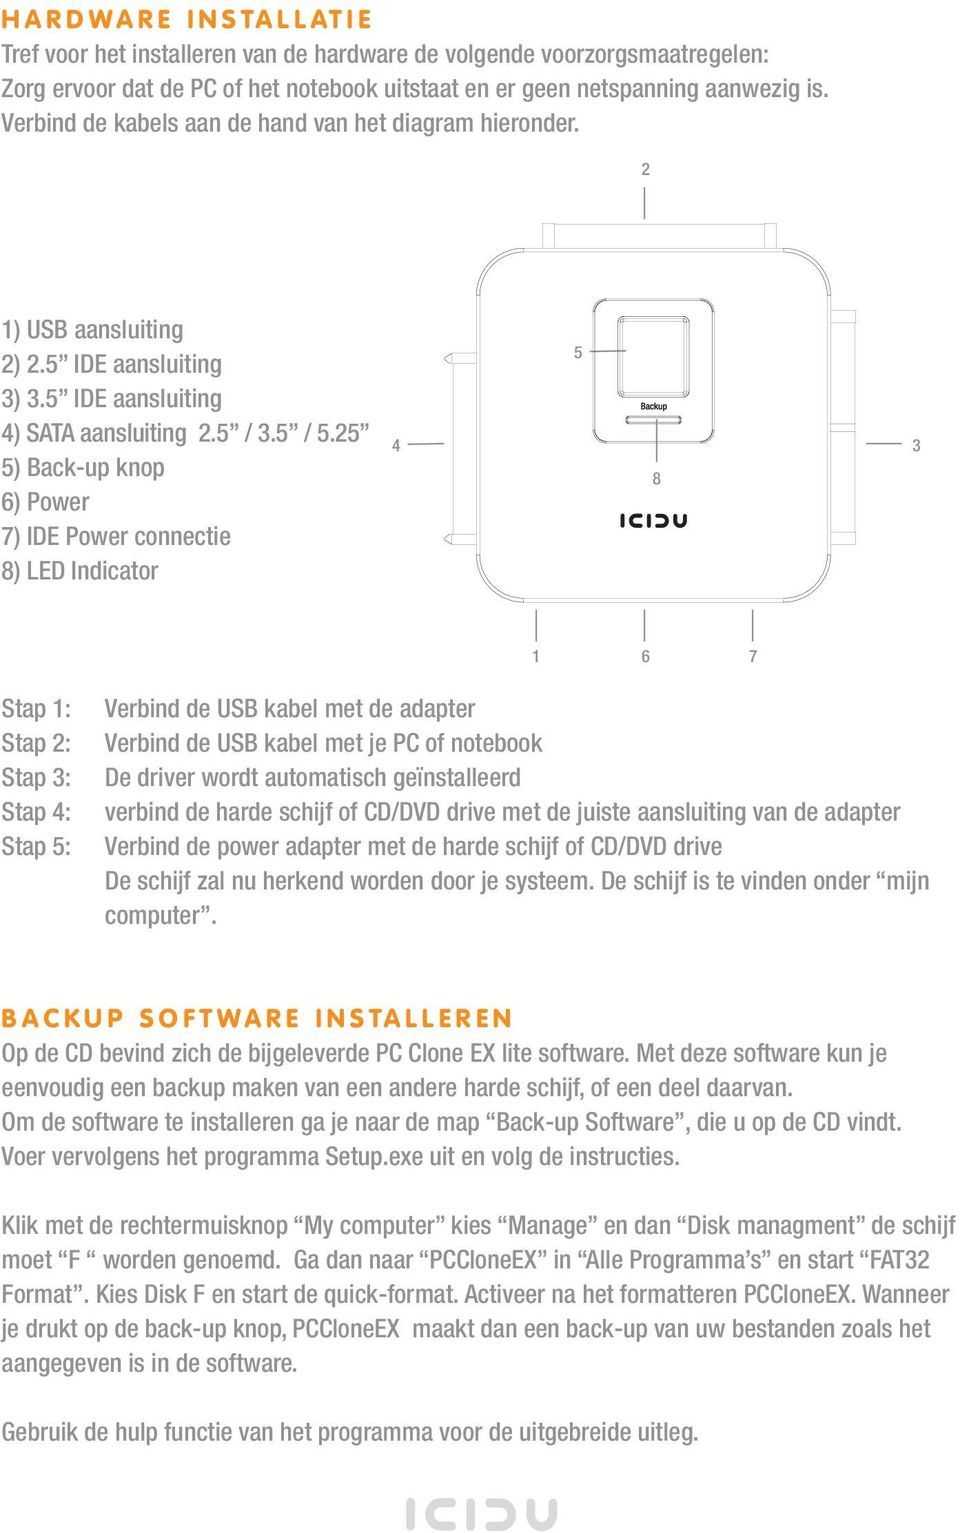 25 5) Back-up knop 6) Power 7) IDE Power connectie 8) LED Indicator 4 5 8 3 1 6 7 Stap 1: Stap 2: Stap 3: Stap 4: Stap 5: Verbind de USB kabel met de adapter Verbind de USB kabel met je PC of